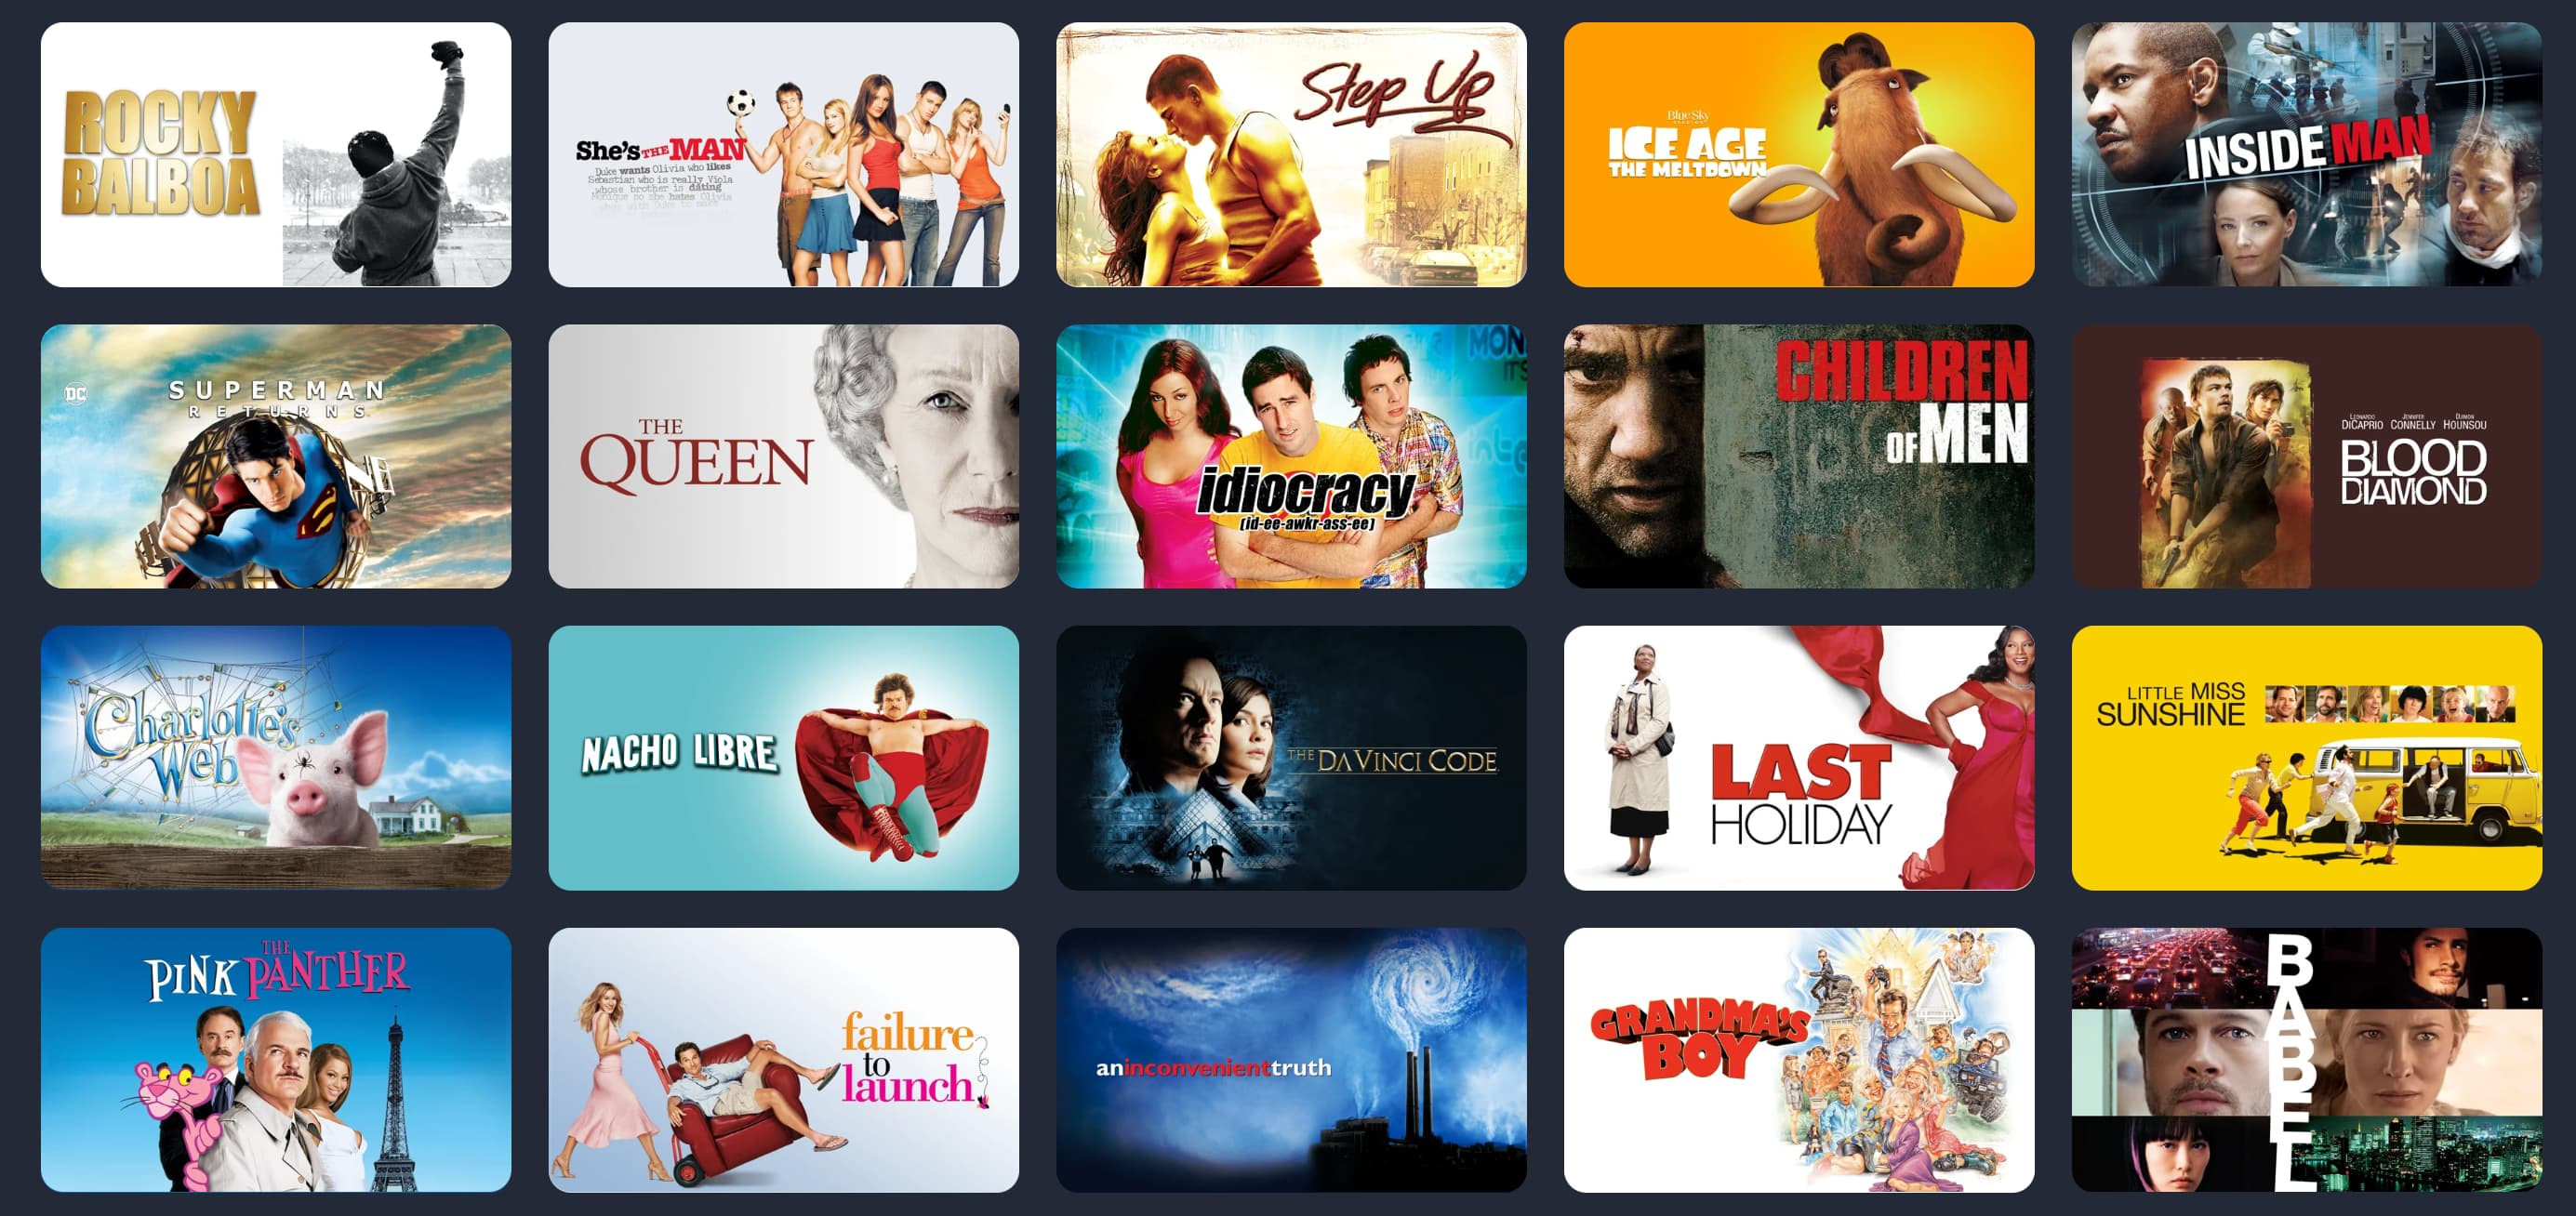 Massive iTunes $5 movie sale includes Source Code, Blow, Happy Gilmore, and much more